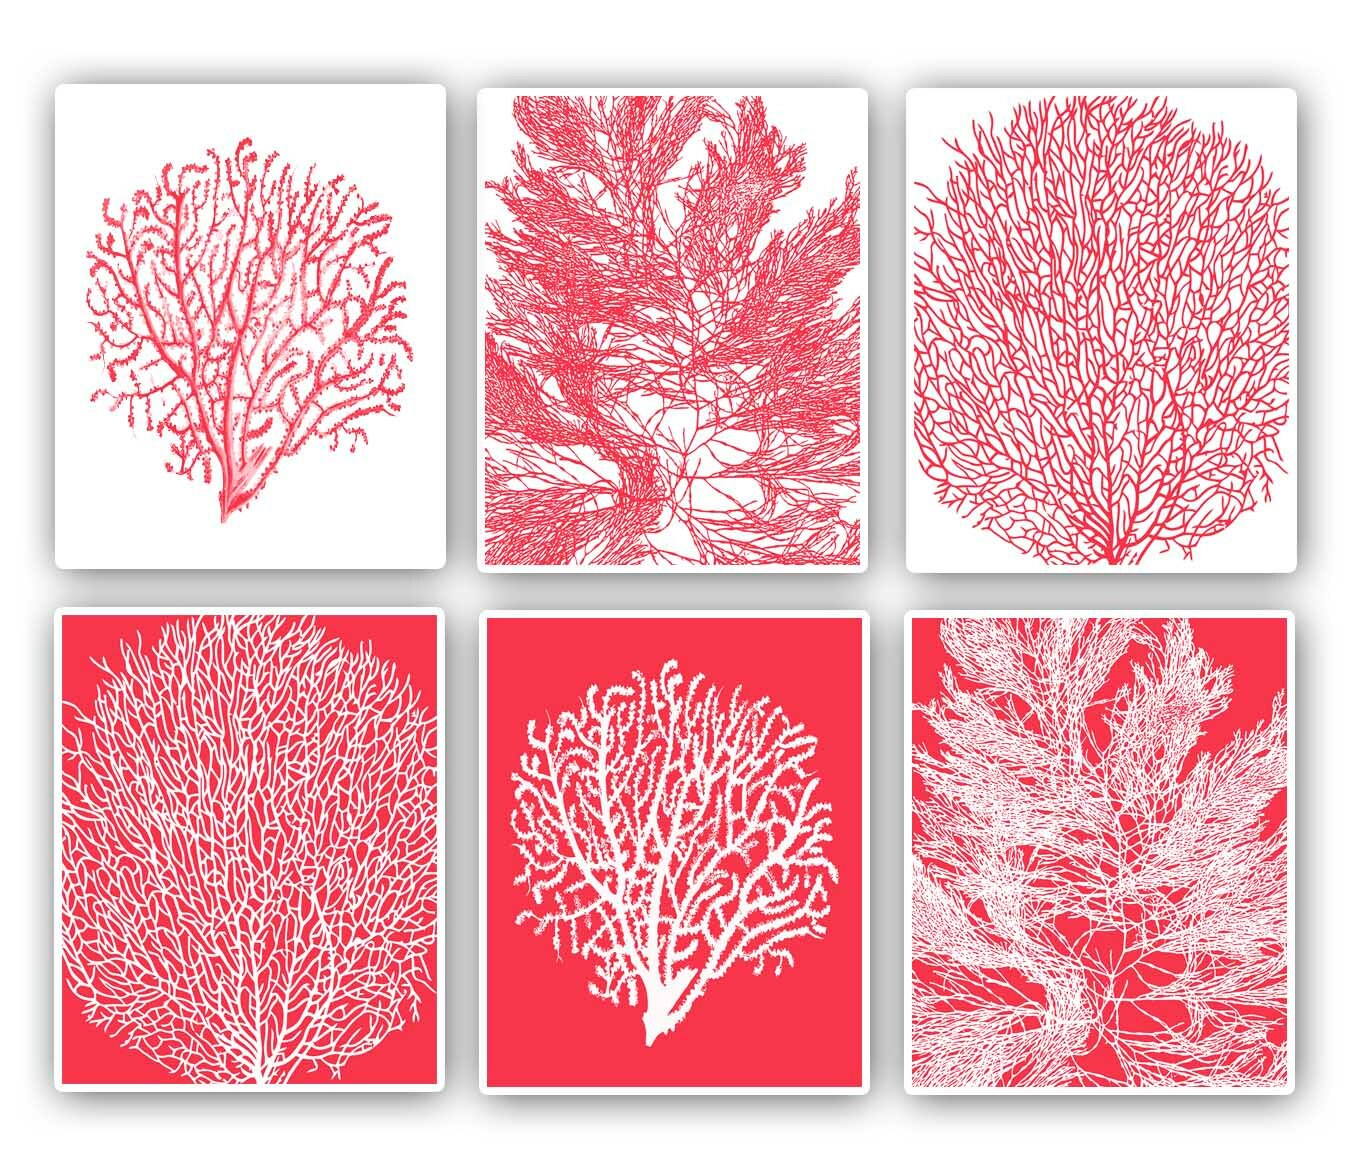 Sea Fan Prints 8x10 Prints Set Of 6 Pink Red Background. Staphylococcal Pneumonia Signs. Zoonosis Signs. Pisci Signs Of Stroke. Fun Road Signs Of Stroke. Roll Tide Signs Of Stroke. Library Collection Signs. Prayer Signs Of Stroke. Foot Fungus Bottom Signs Of Stroke